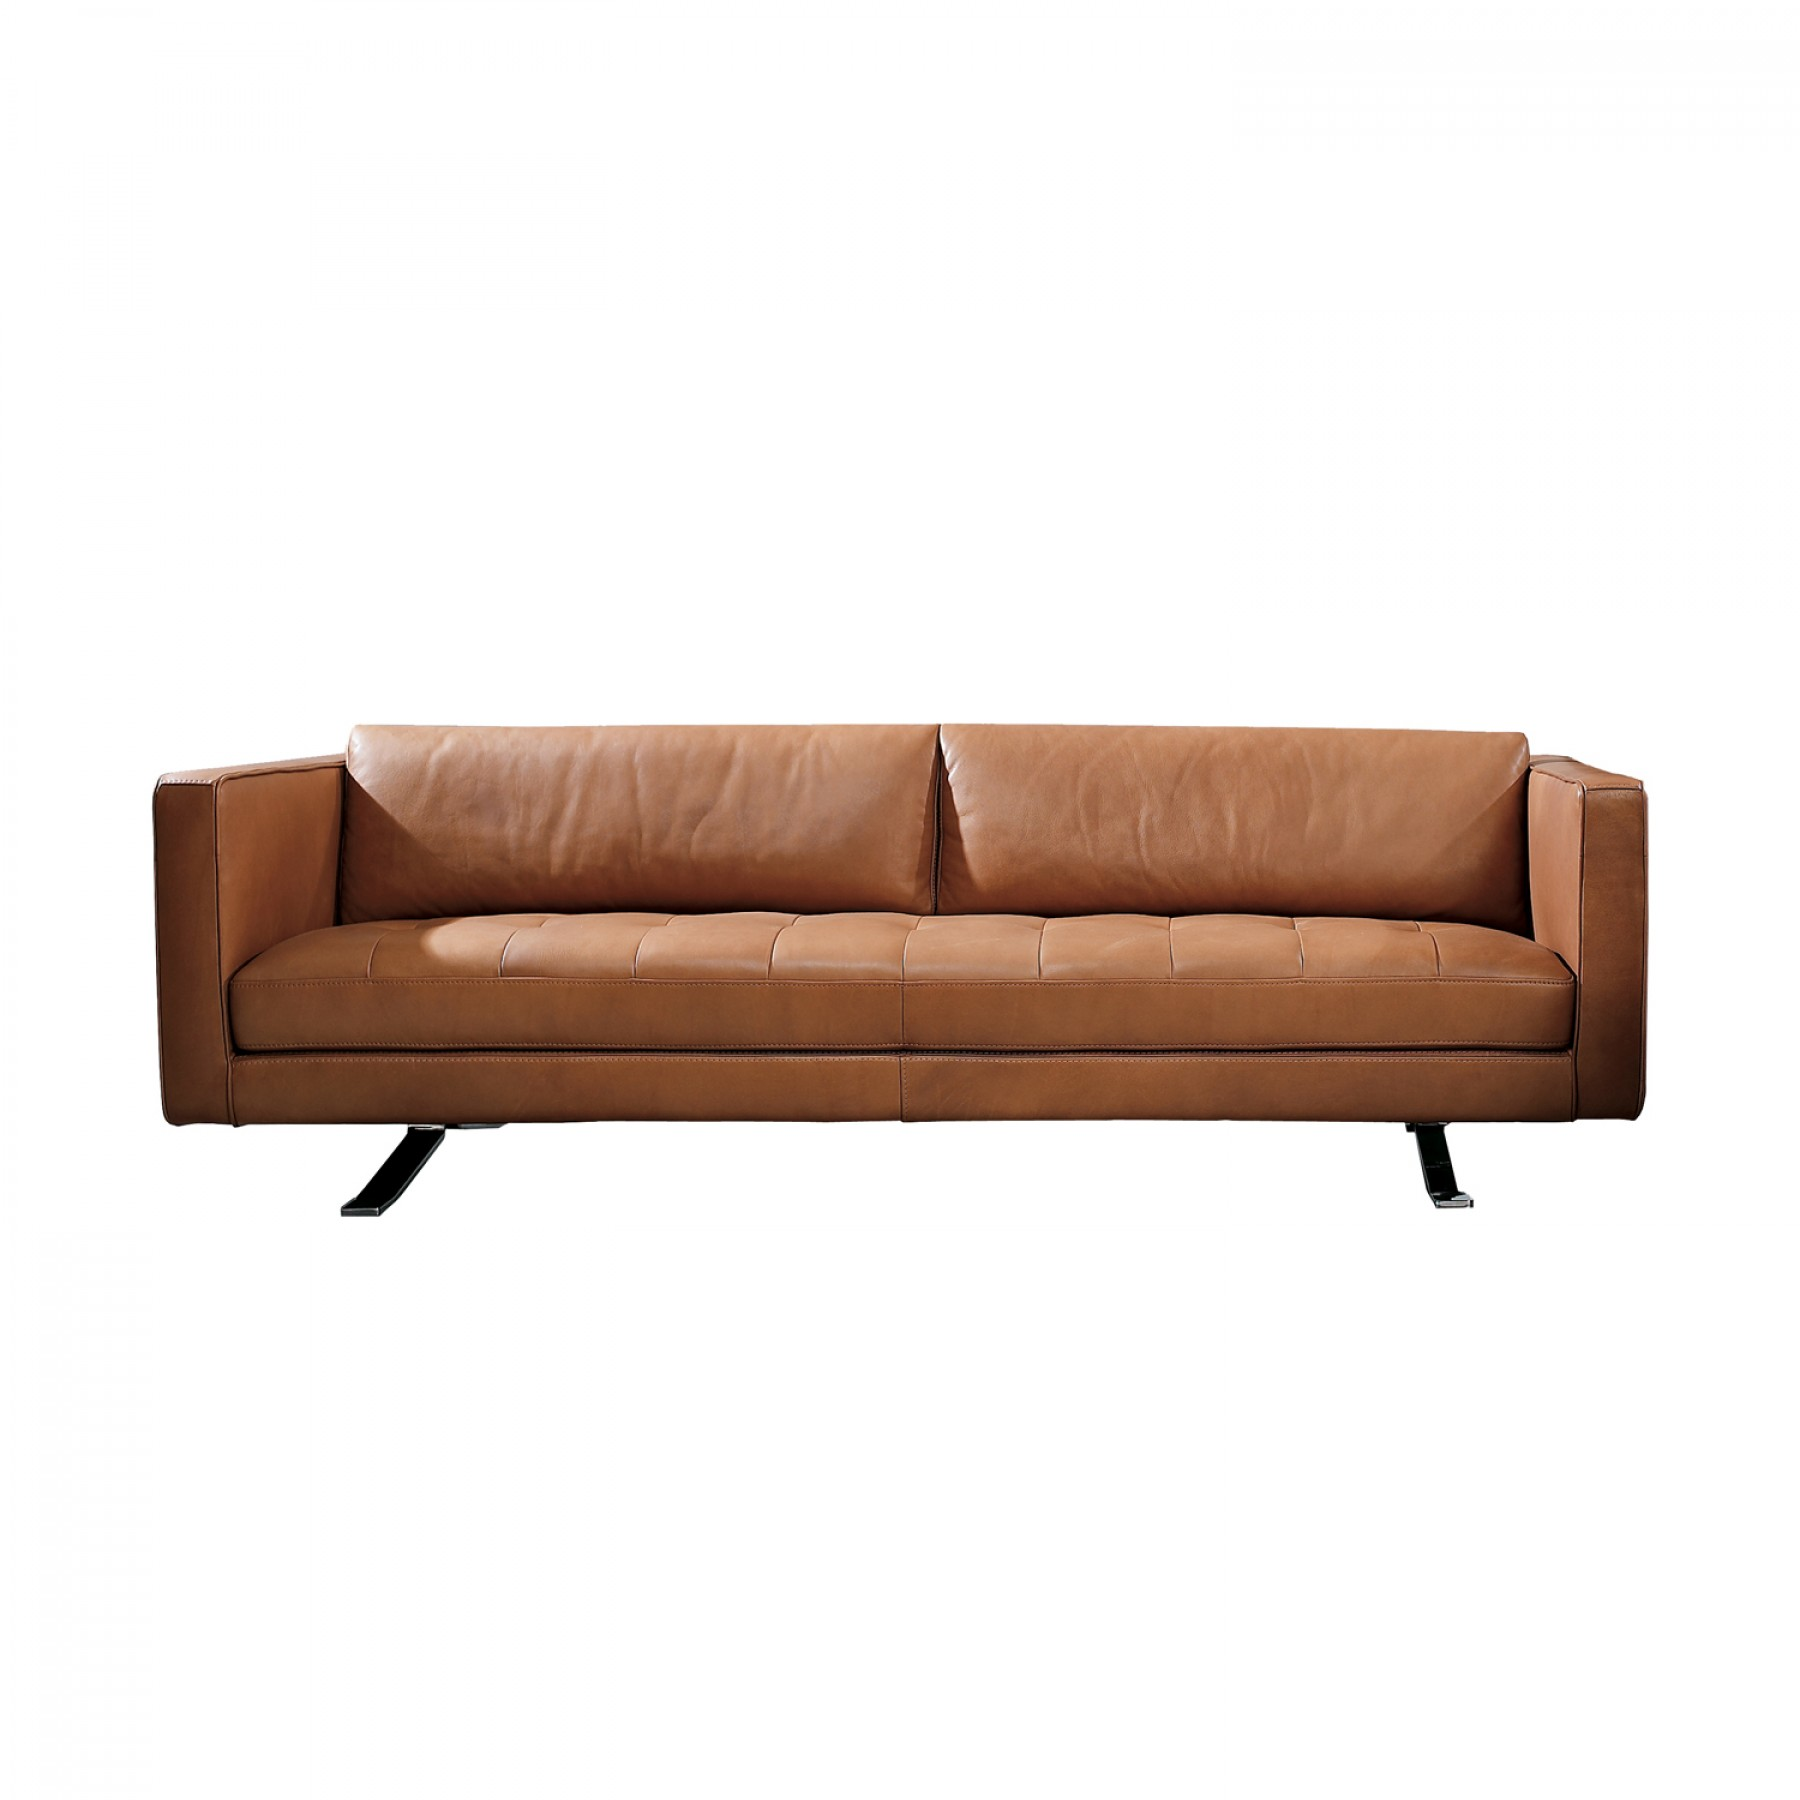 4 Seater Sofa Australia Leather Sofas In Sydney Nsw Stkittsvilla